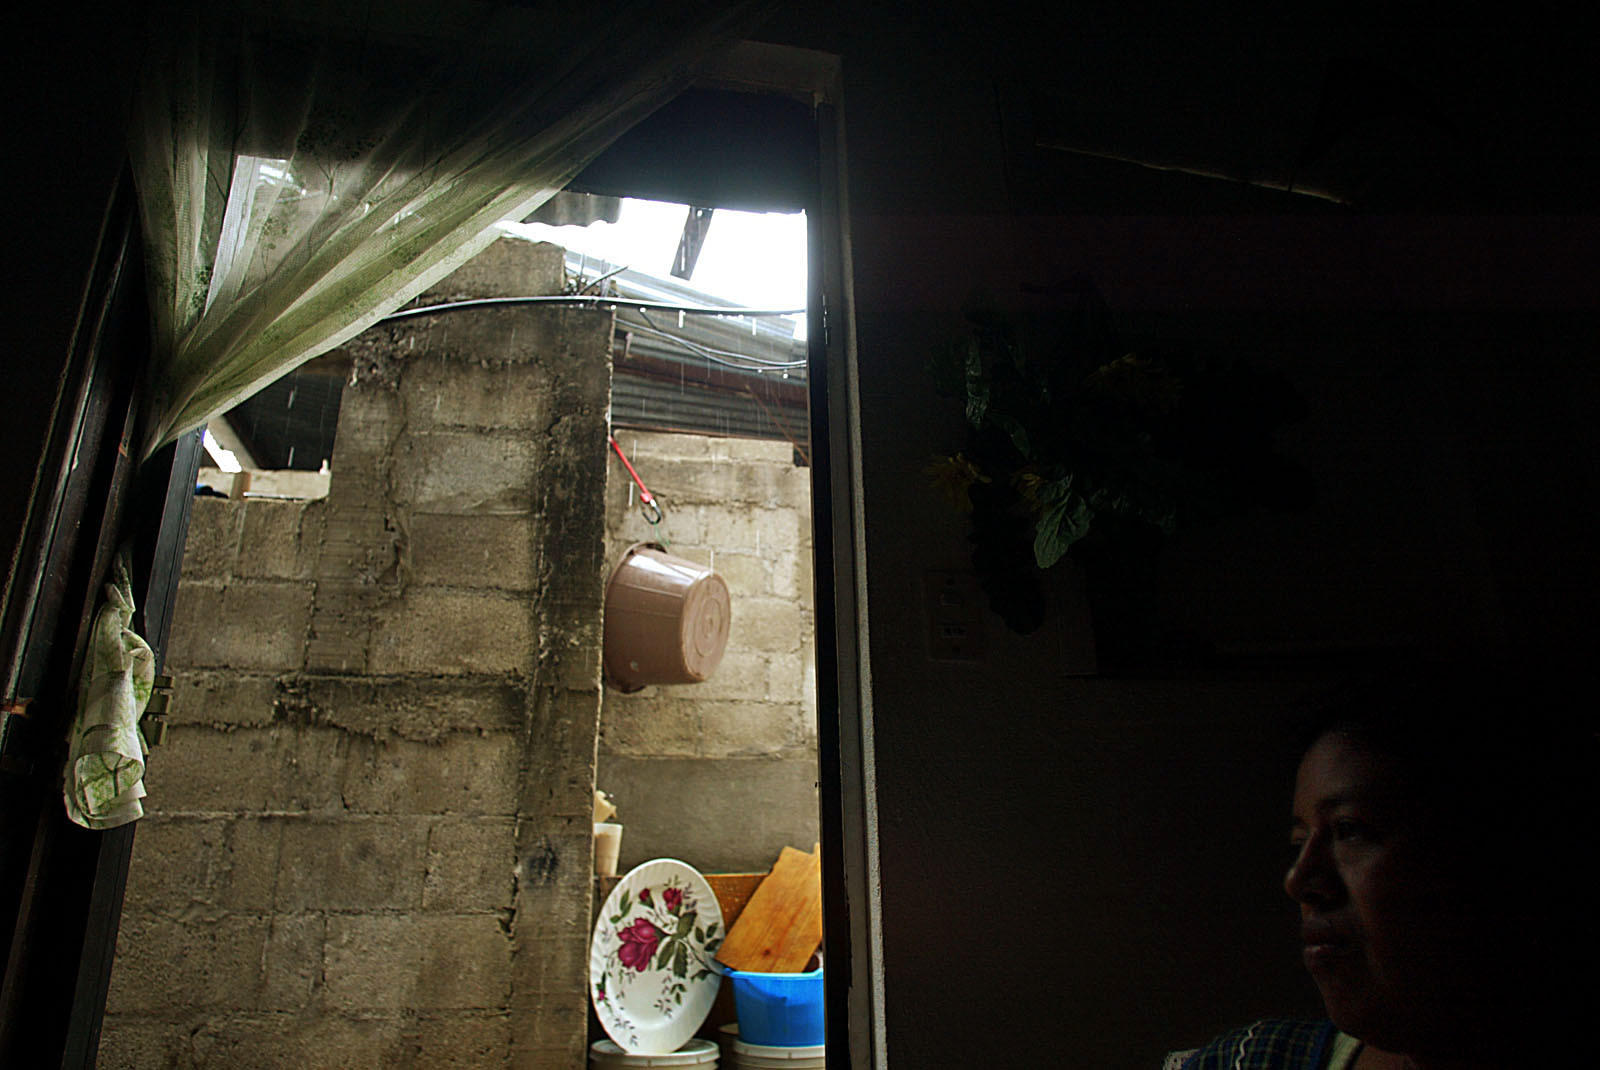 Engracia Cirin sits inside a Guatemala City slum dwelling where she lives with her husband Antonio Paz.